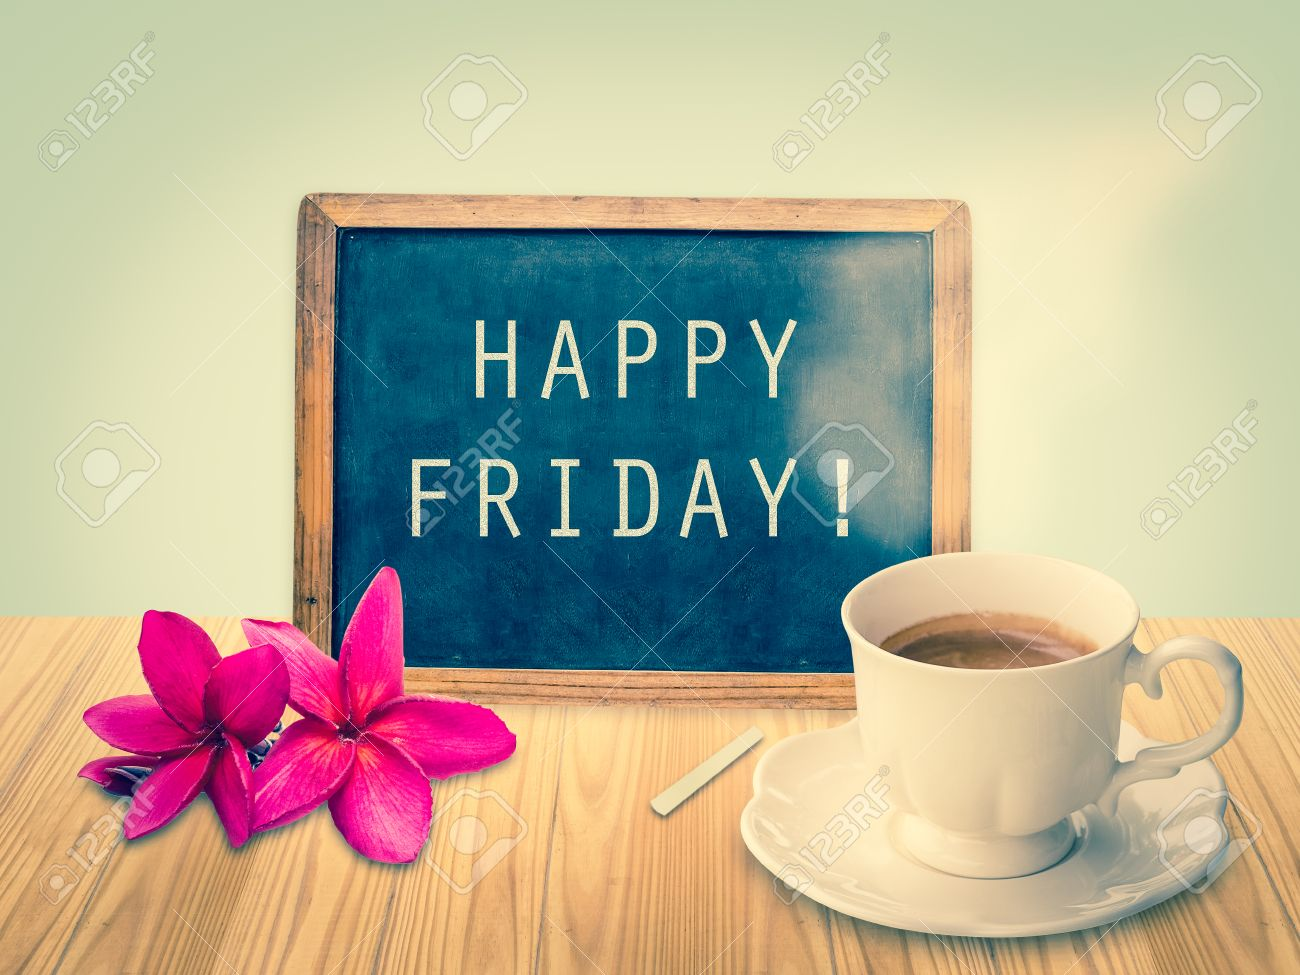 Happy Friday on chalkboard with vintage filter Stock Photo - 36913468